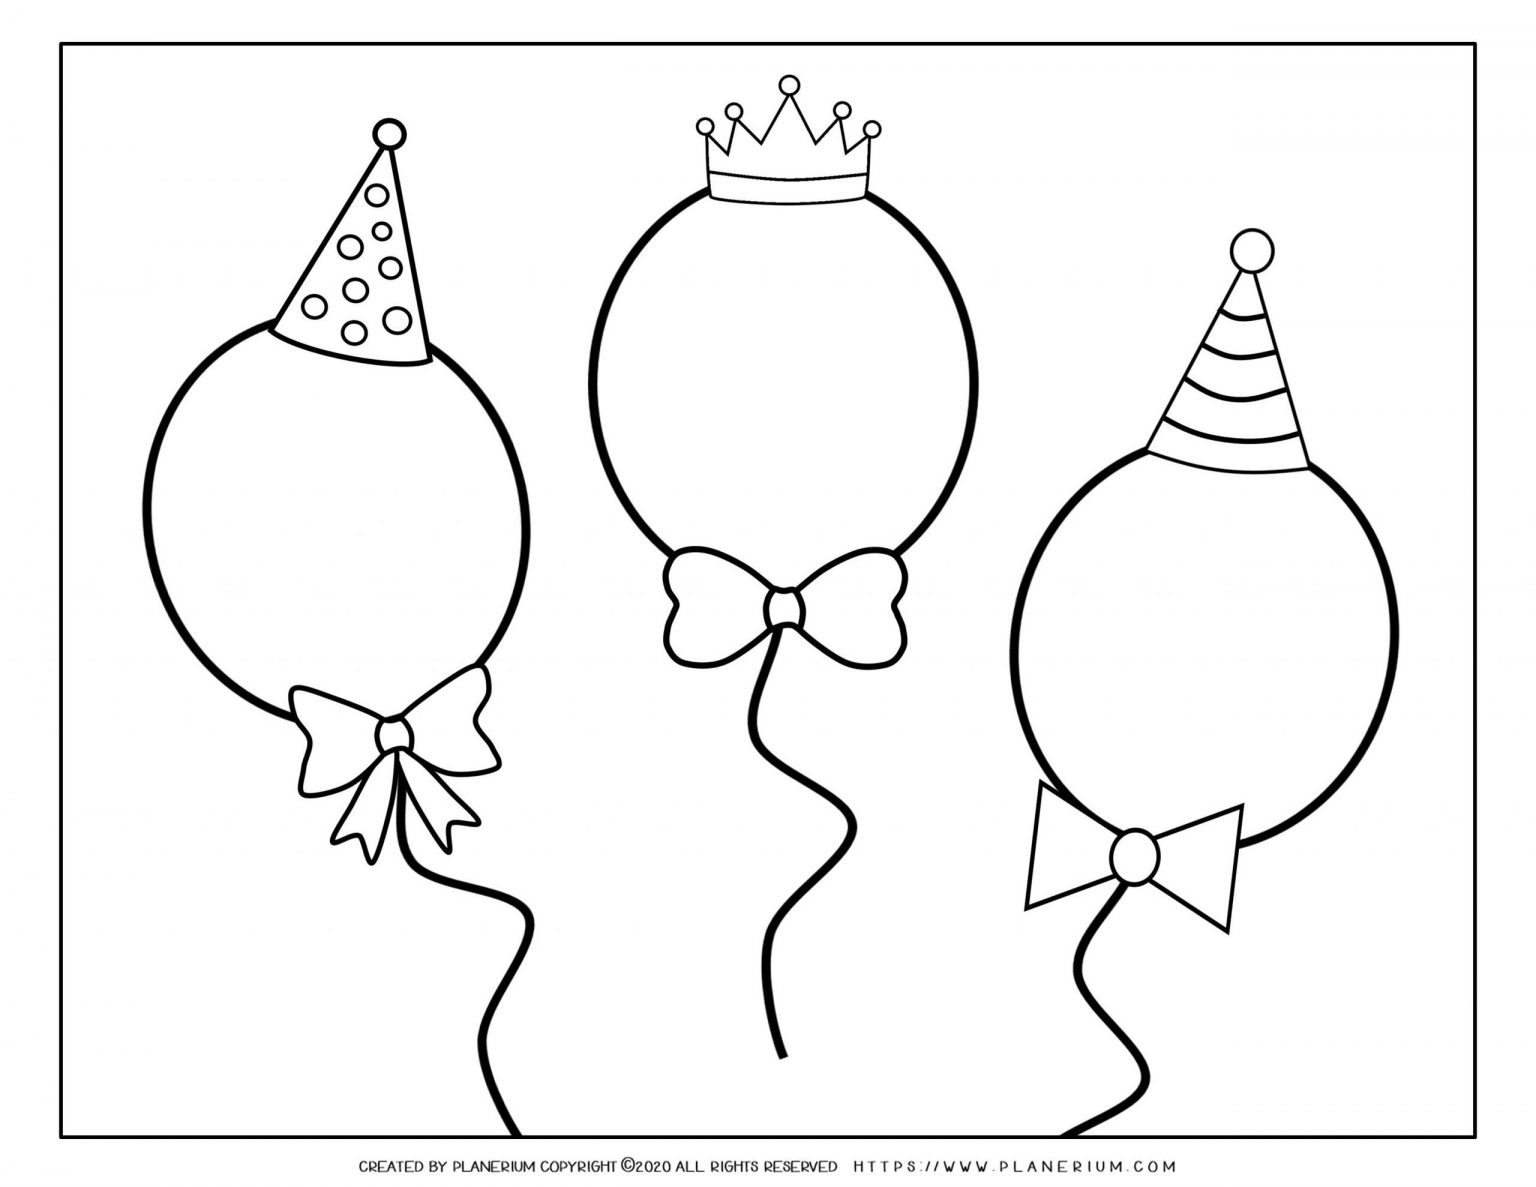 Carnival - Coloring Page Worksheet - Balloons   Planerium